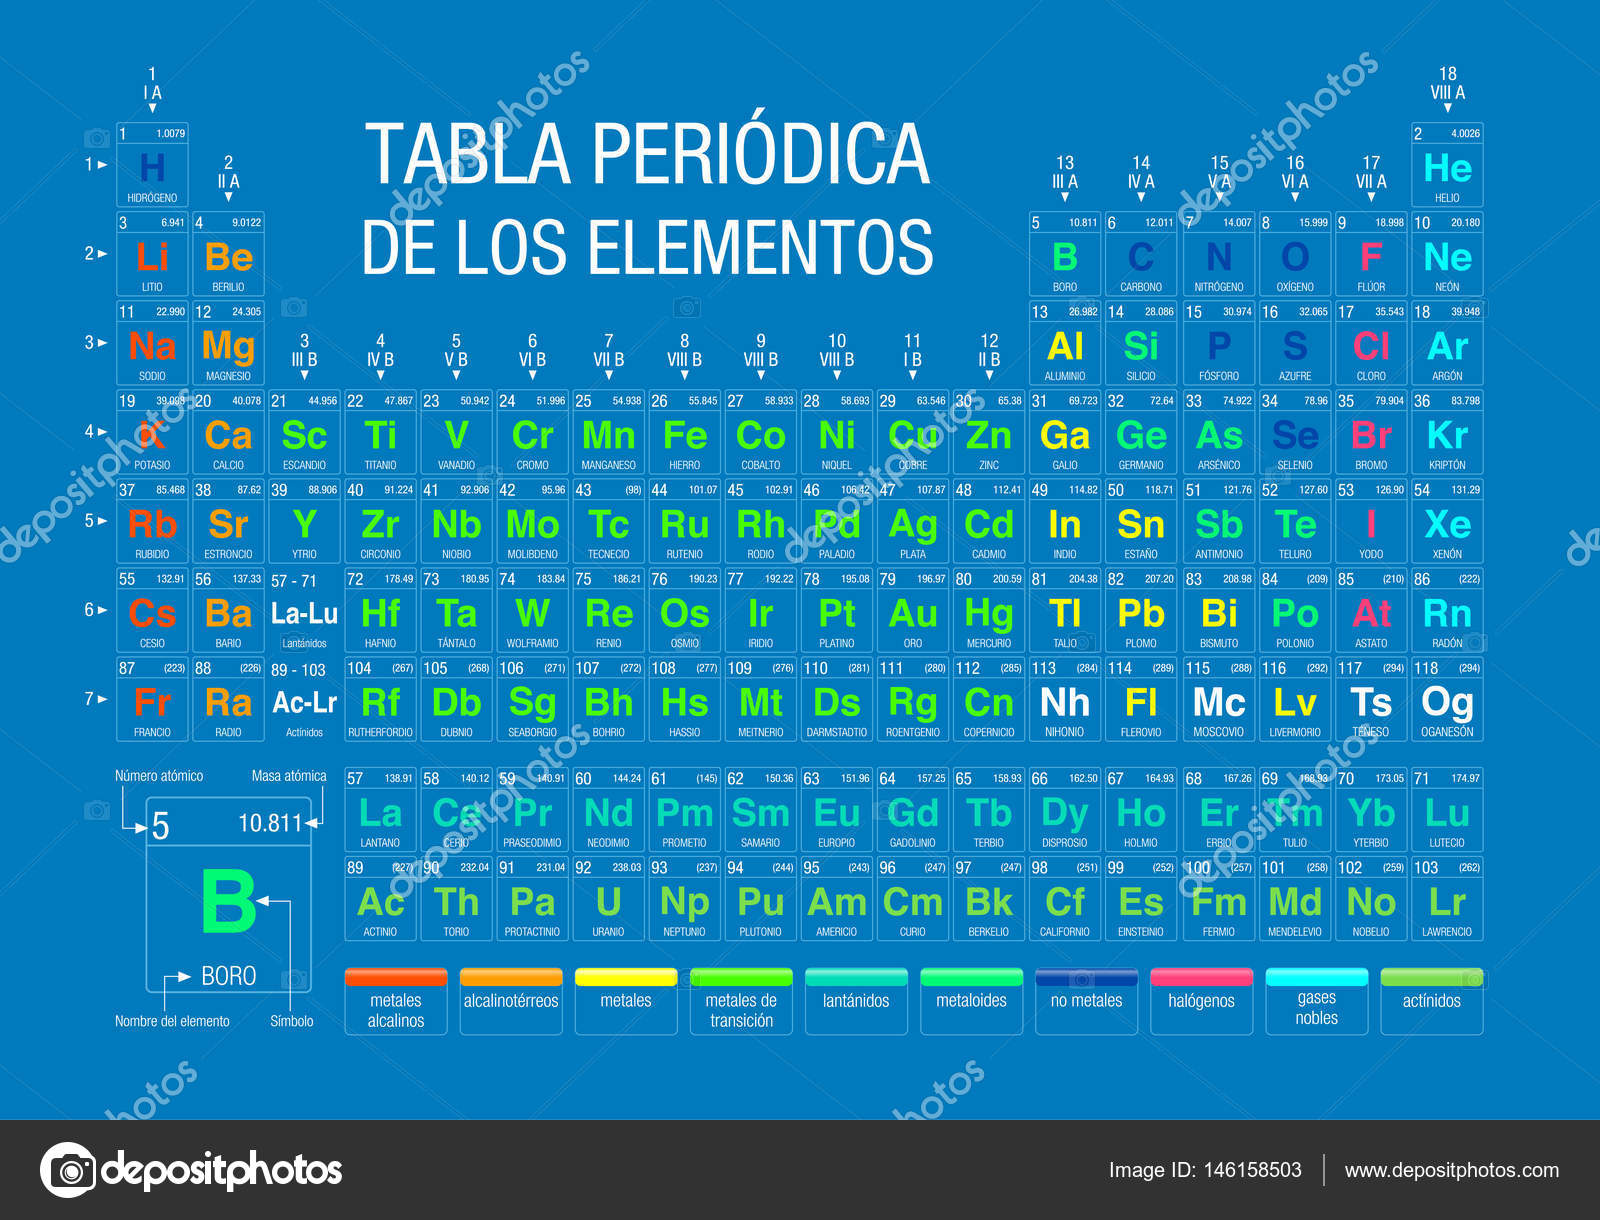 Tabla periodica de los elementos periodic table of elements in tabla periodica de los elementos periodic table of elements in spanish language on blue urtaz Gallery